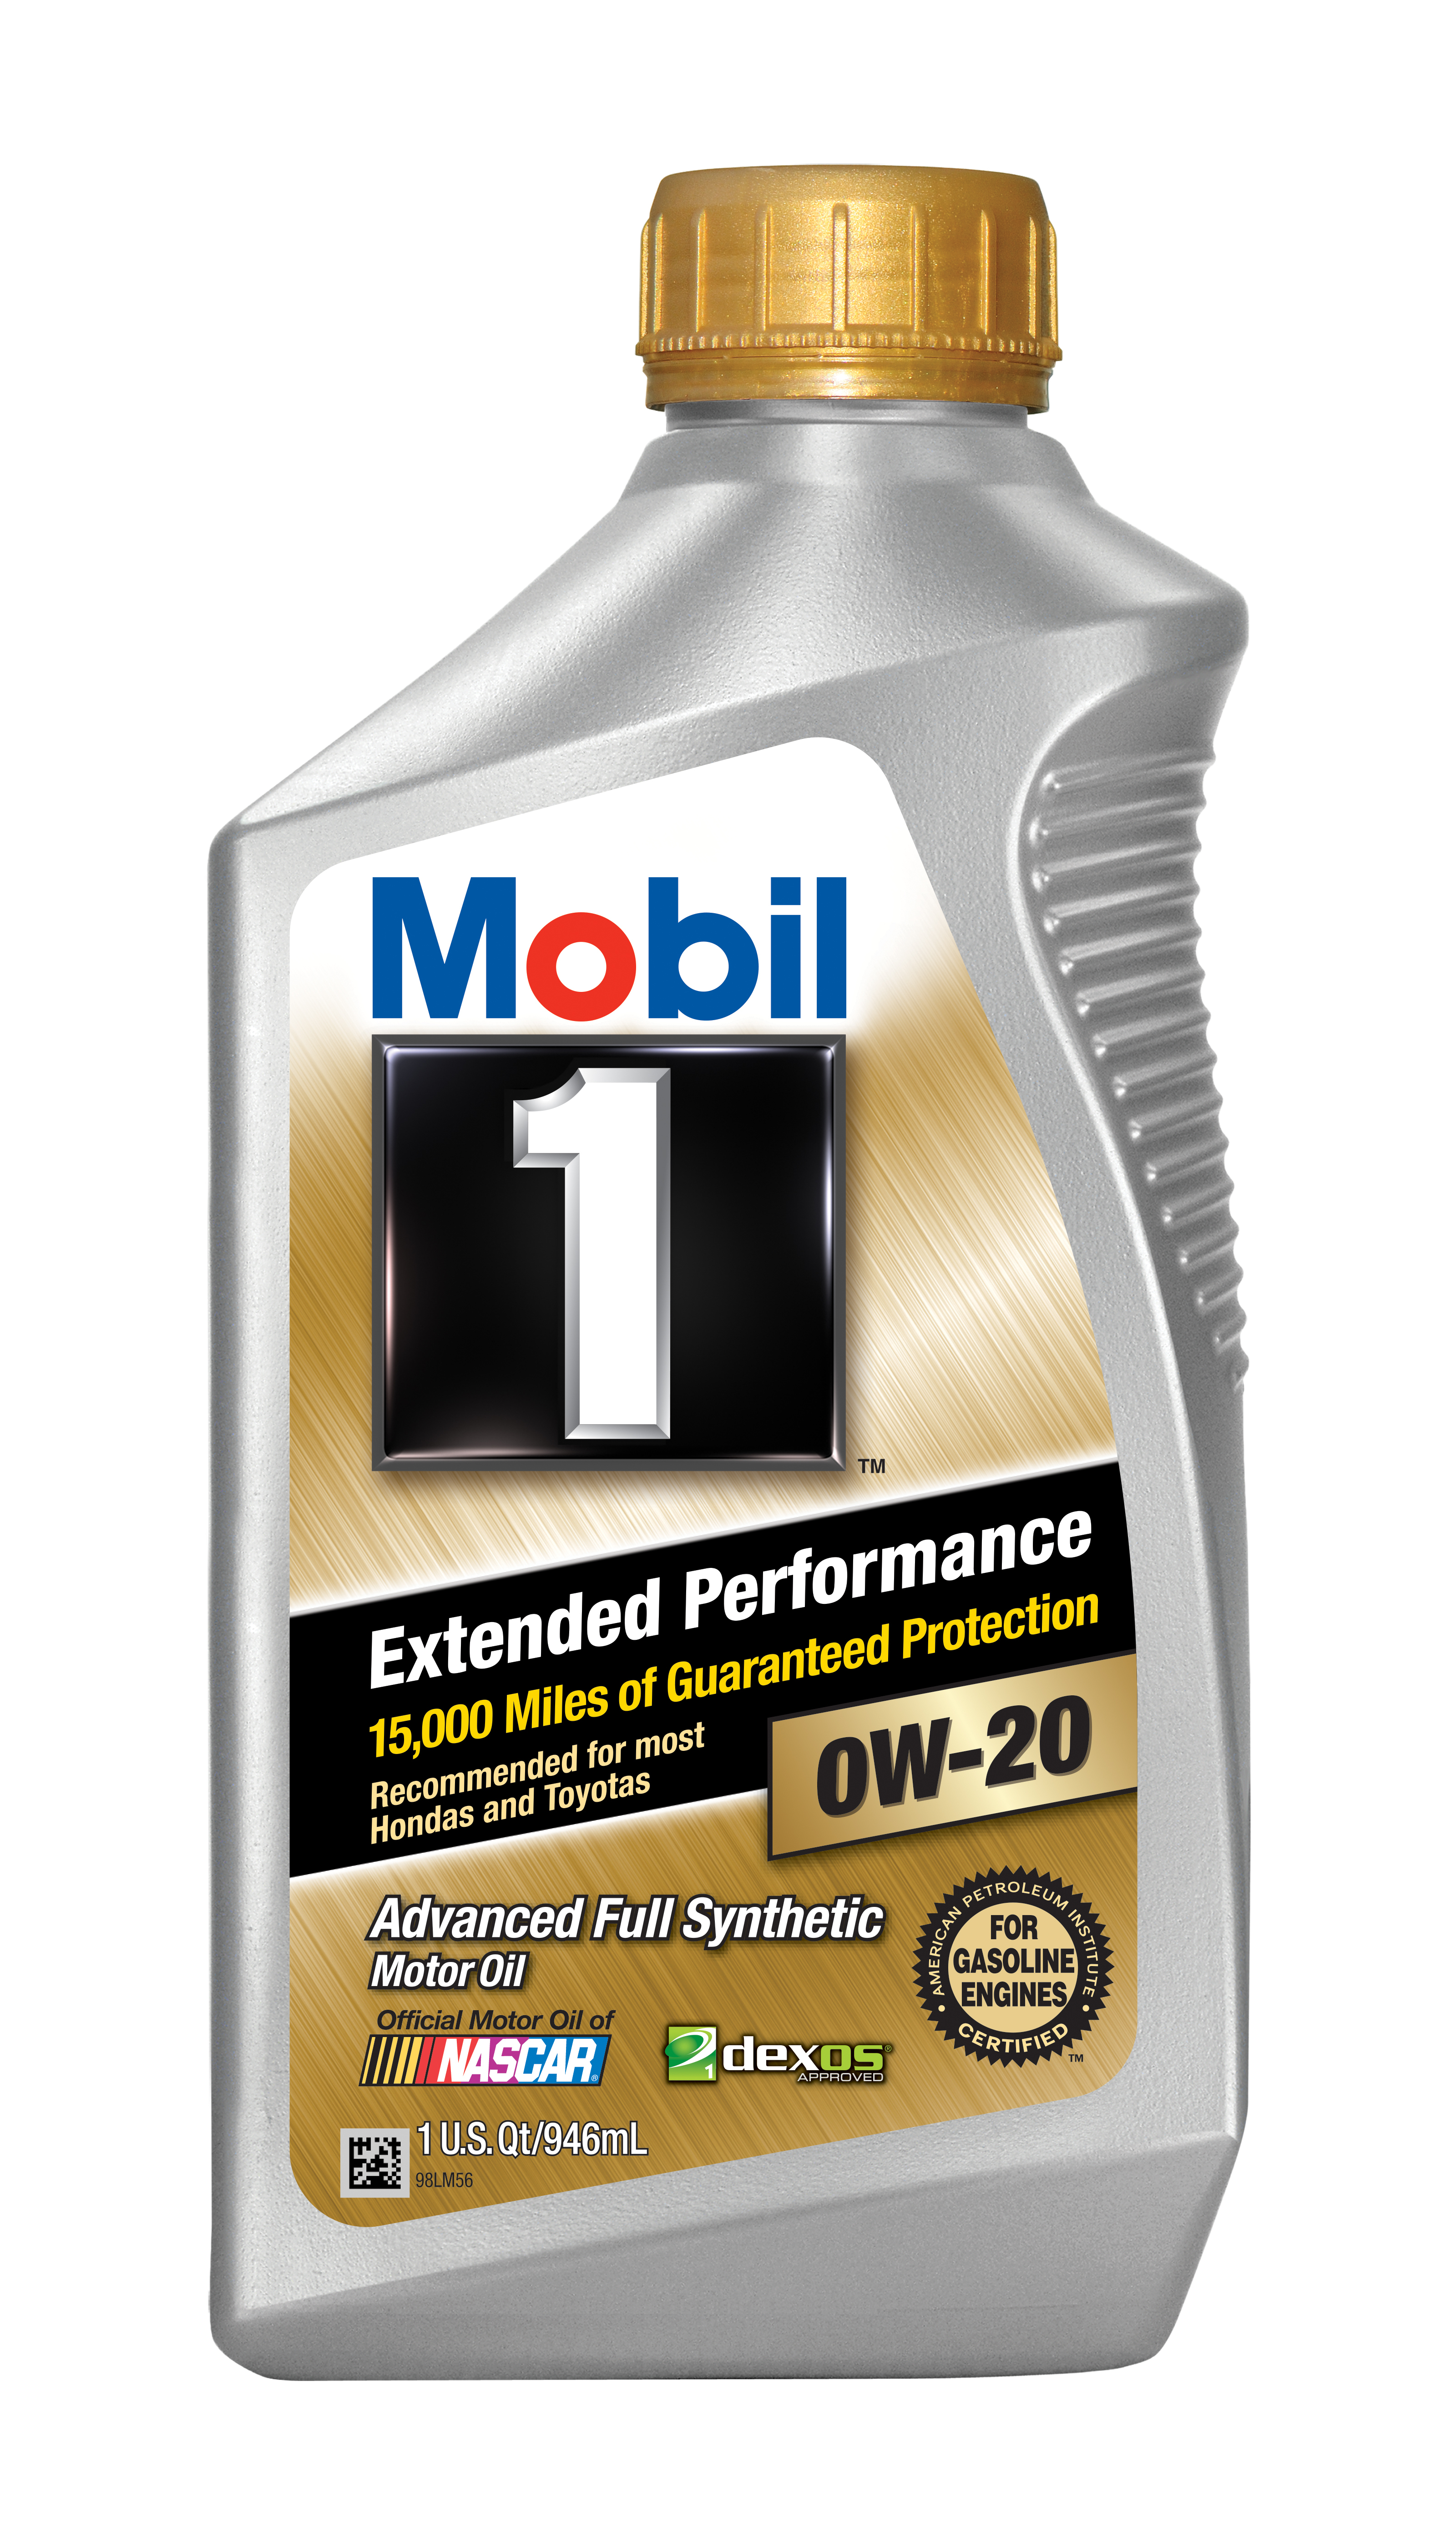 ExxonMobil Introduces SAE 0W-20 Viscosity Motor Oil to Mobil